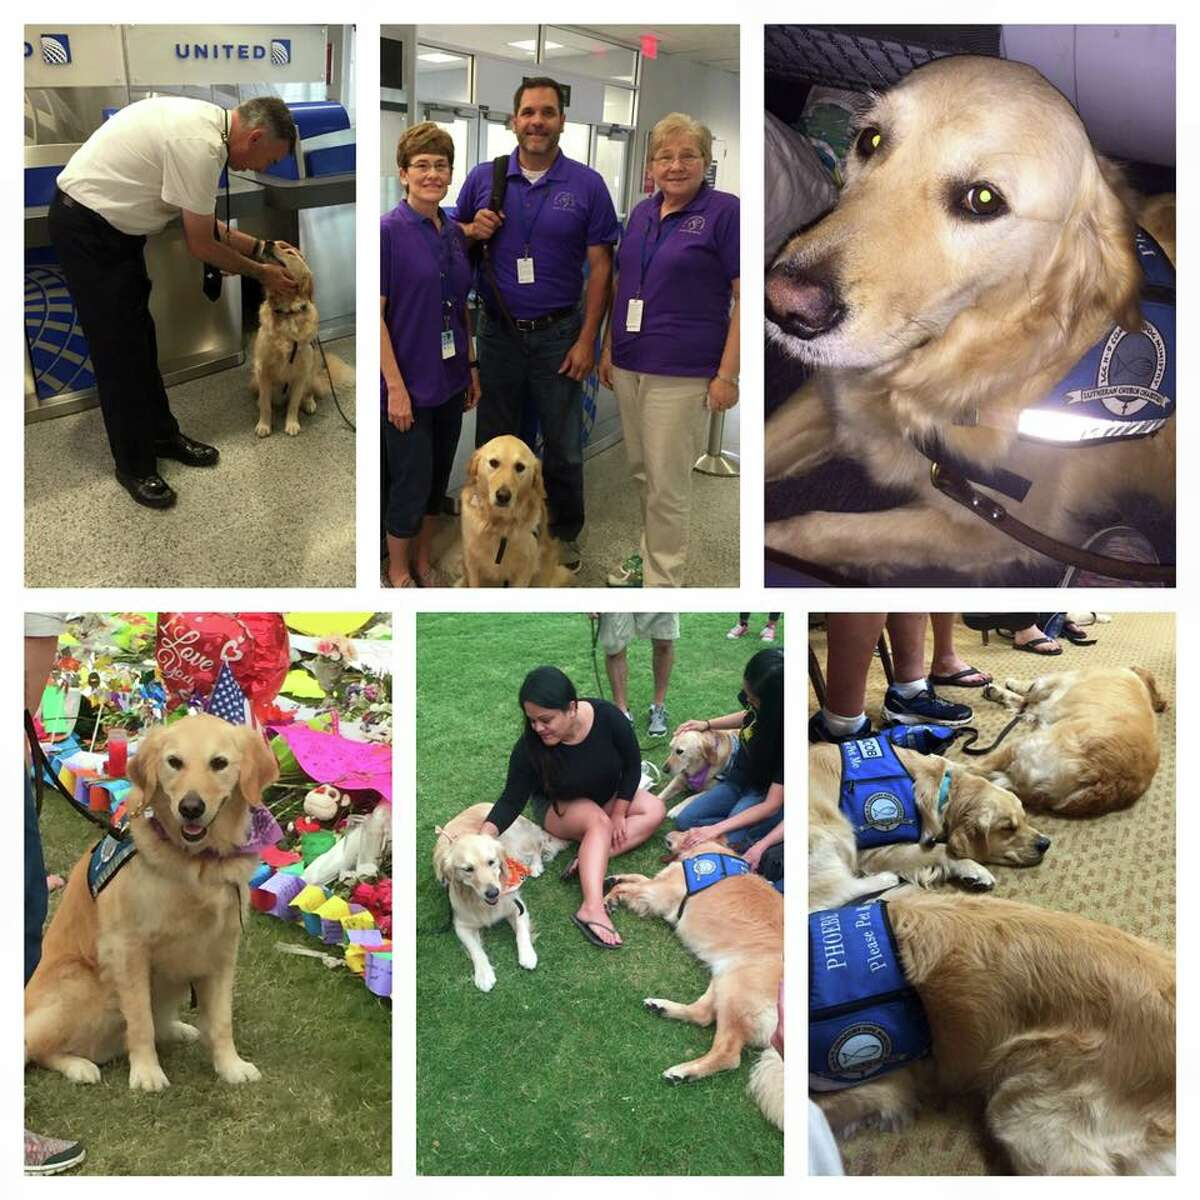 Phoebe, the Texas pup sent to Orlando, shared a photo collage of her day to her Facebook.